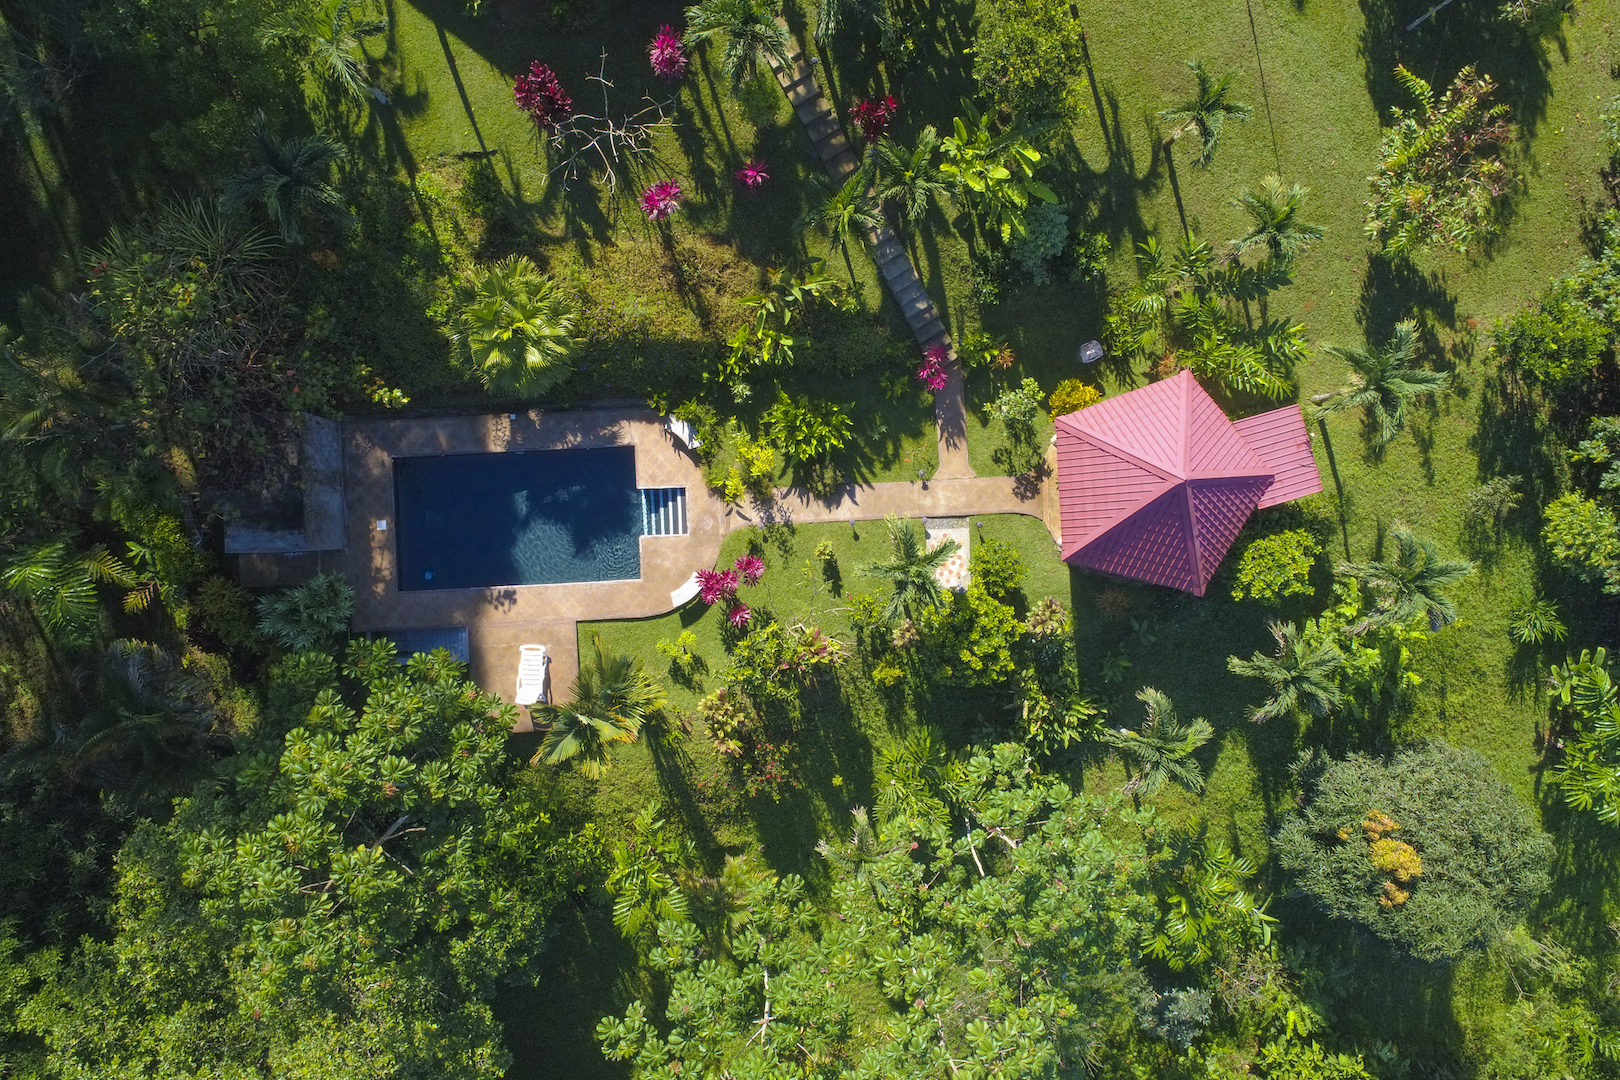 3.3 ACRES - 3 Bedroom Mountain View Home With Pool And River Access!!!